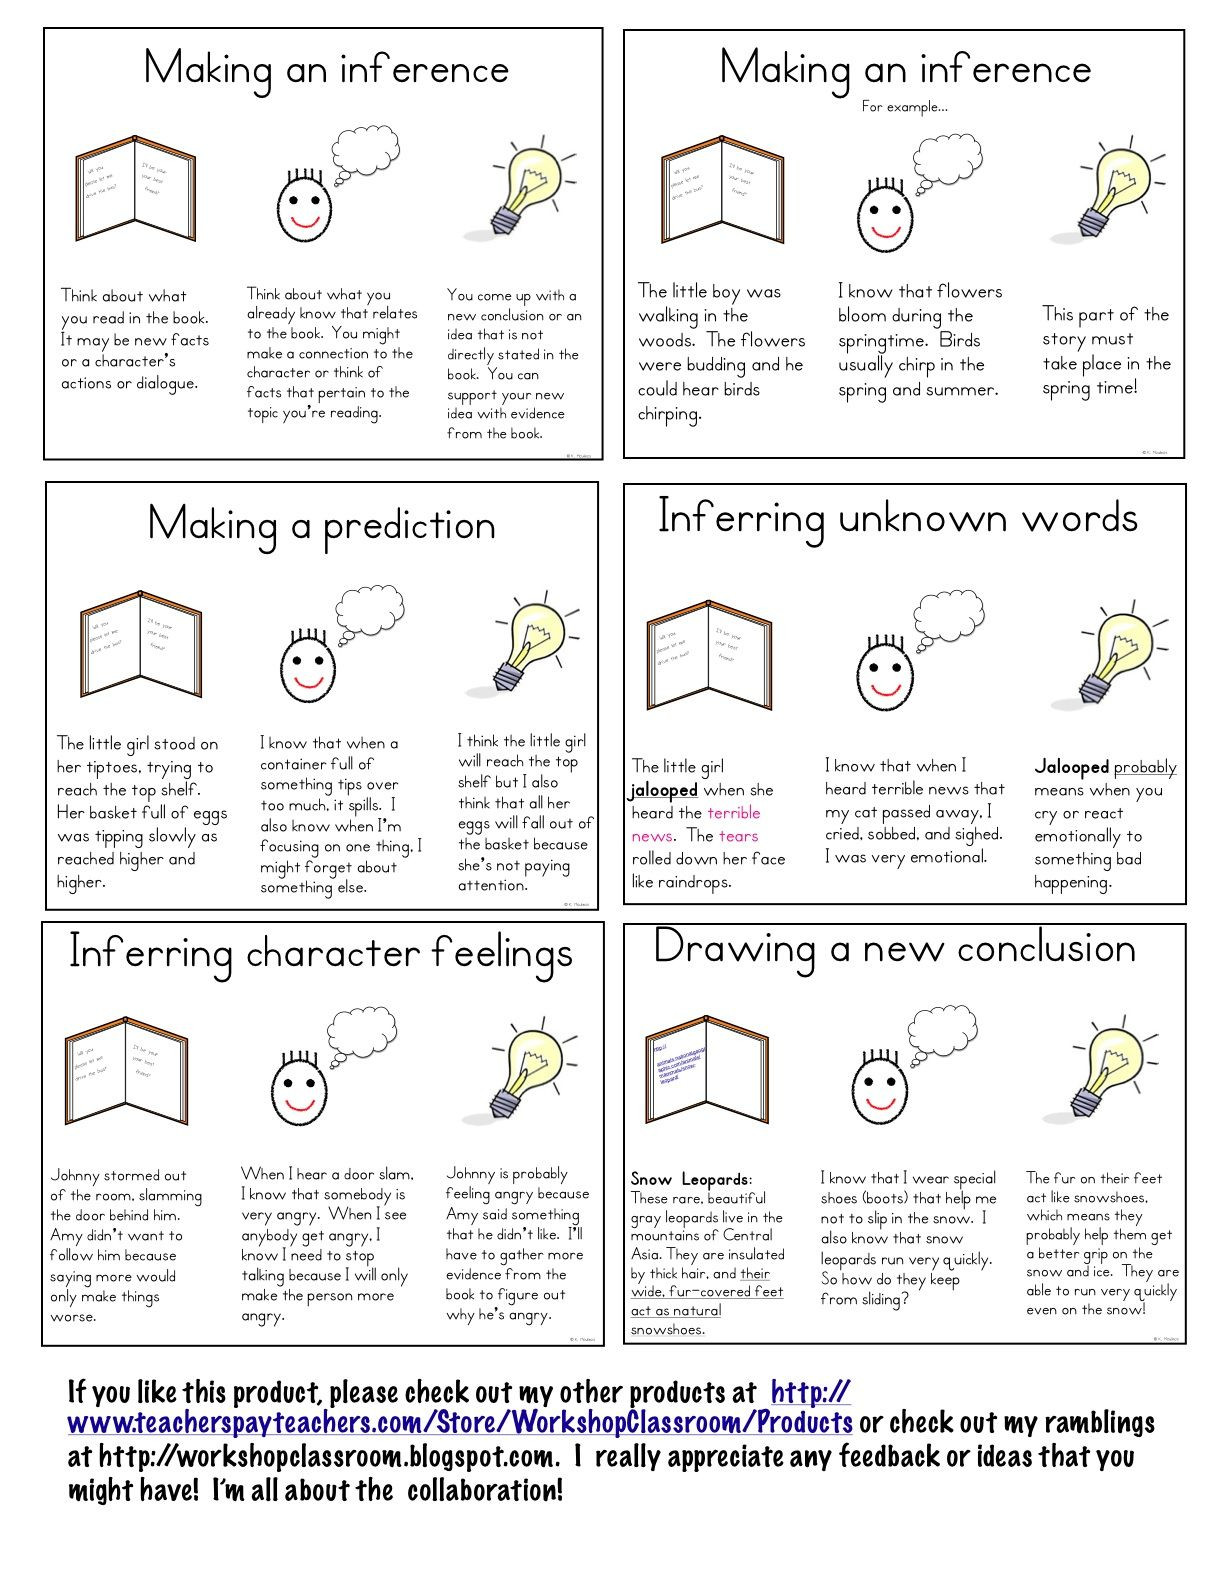 Making Inferences Worksheets 4th Grade Making Inferences Mini Lessons